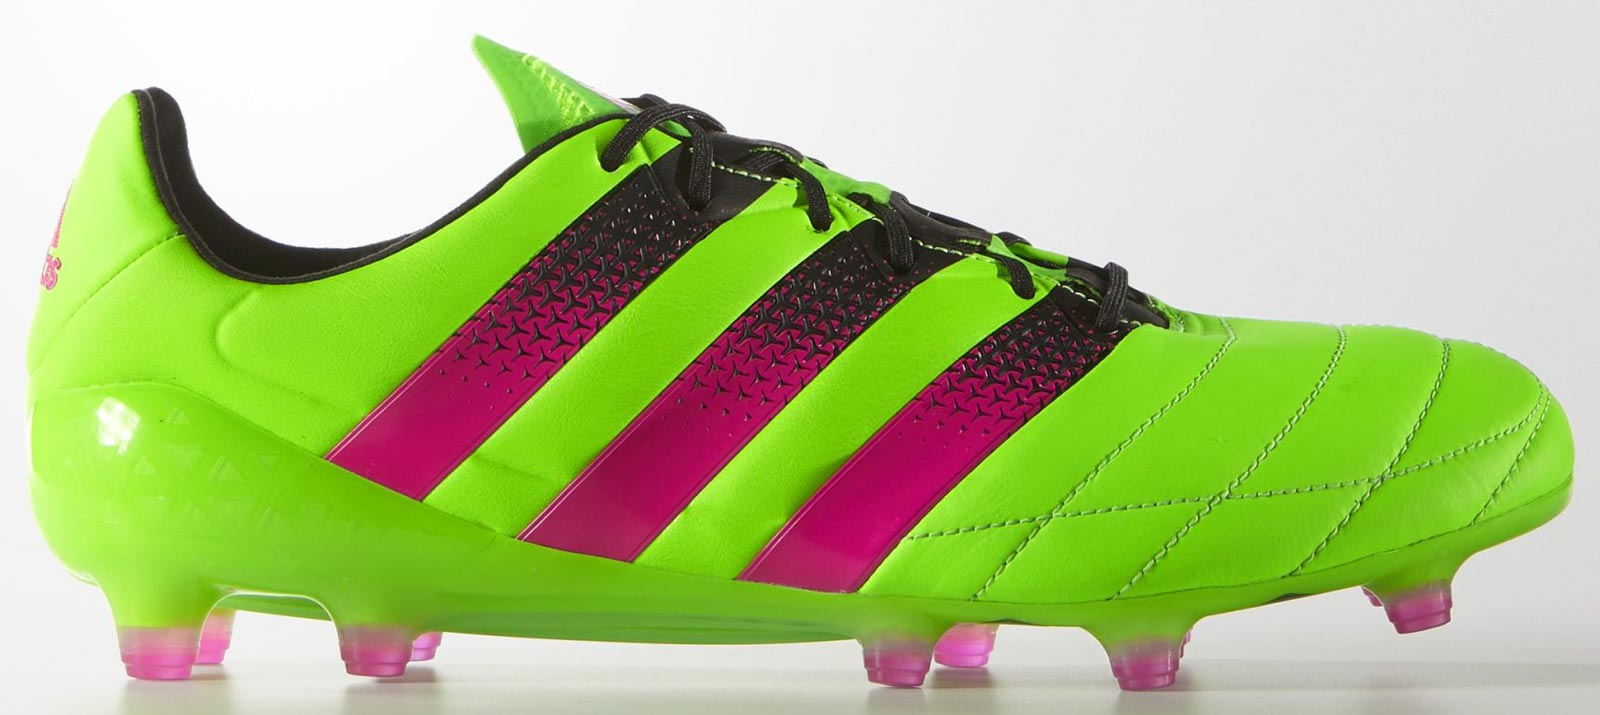 adidas ace 16 online